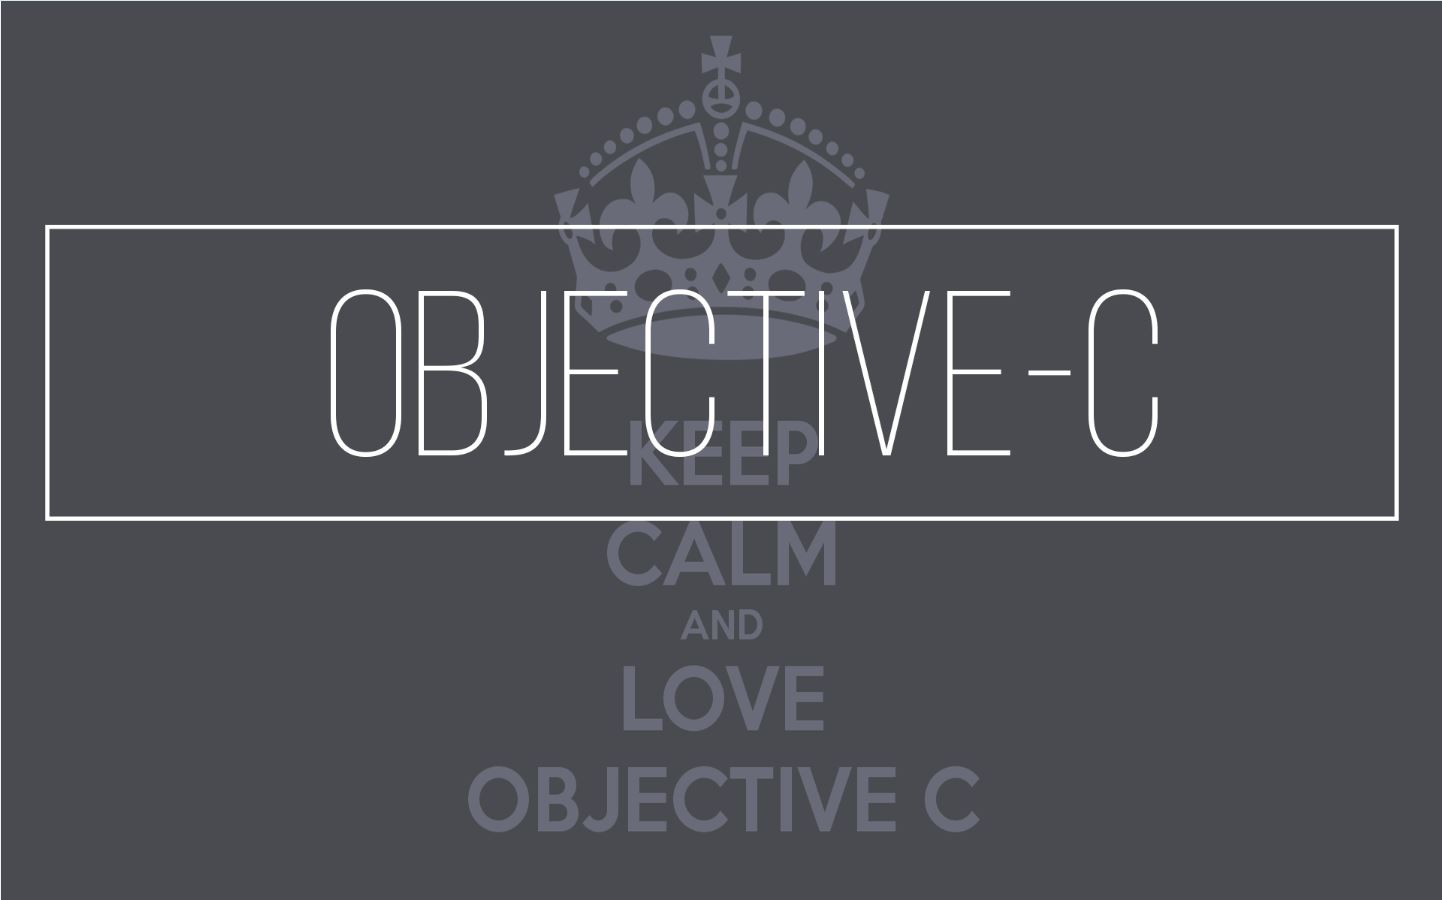 objective-c-1